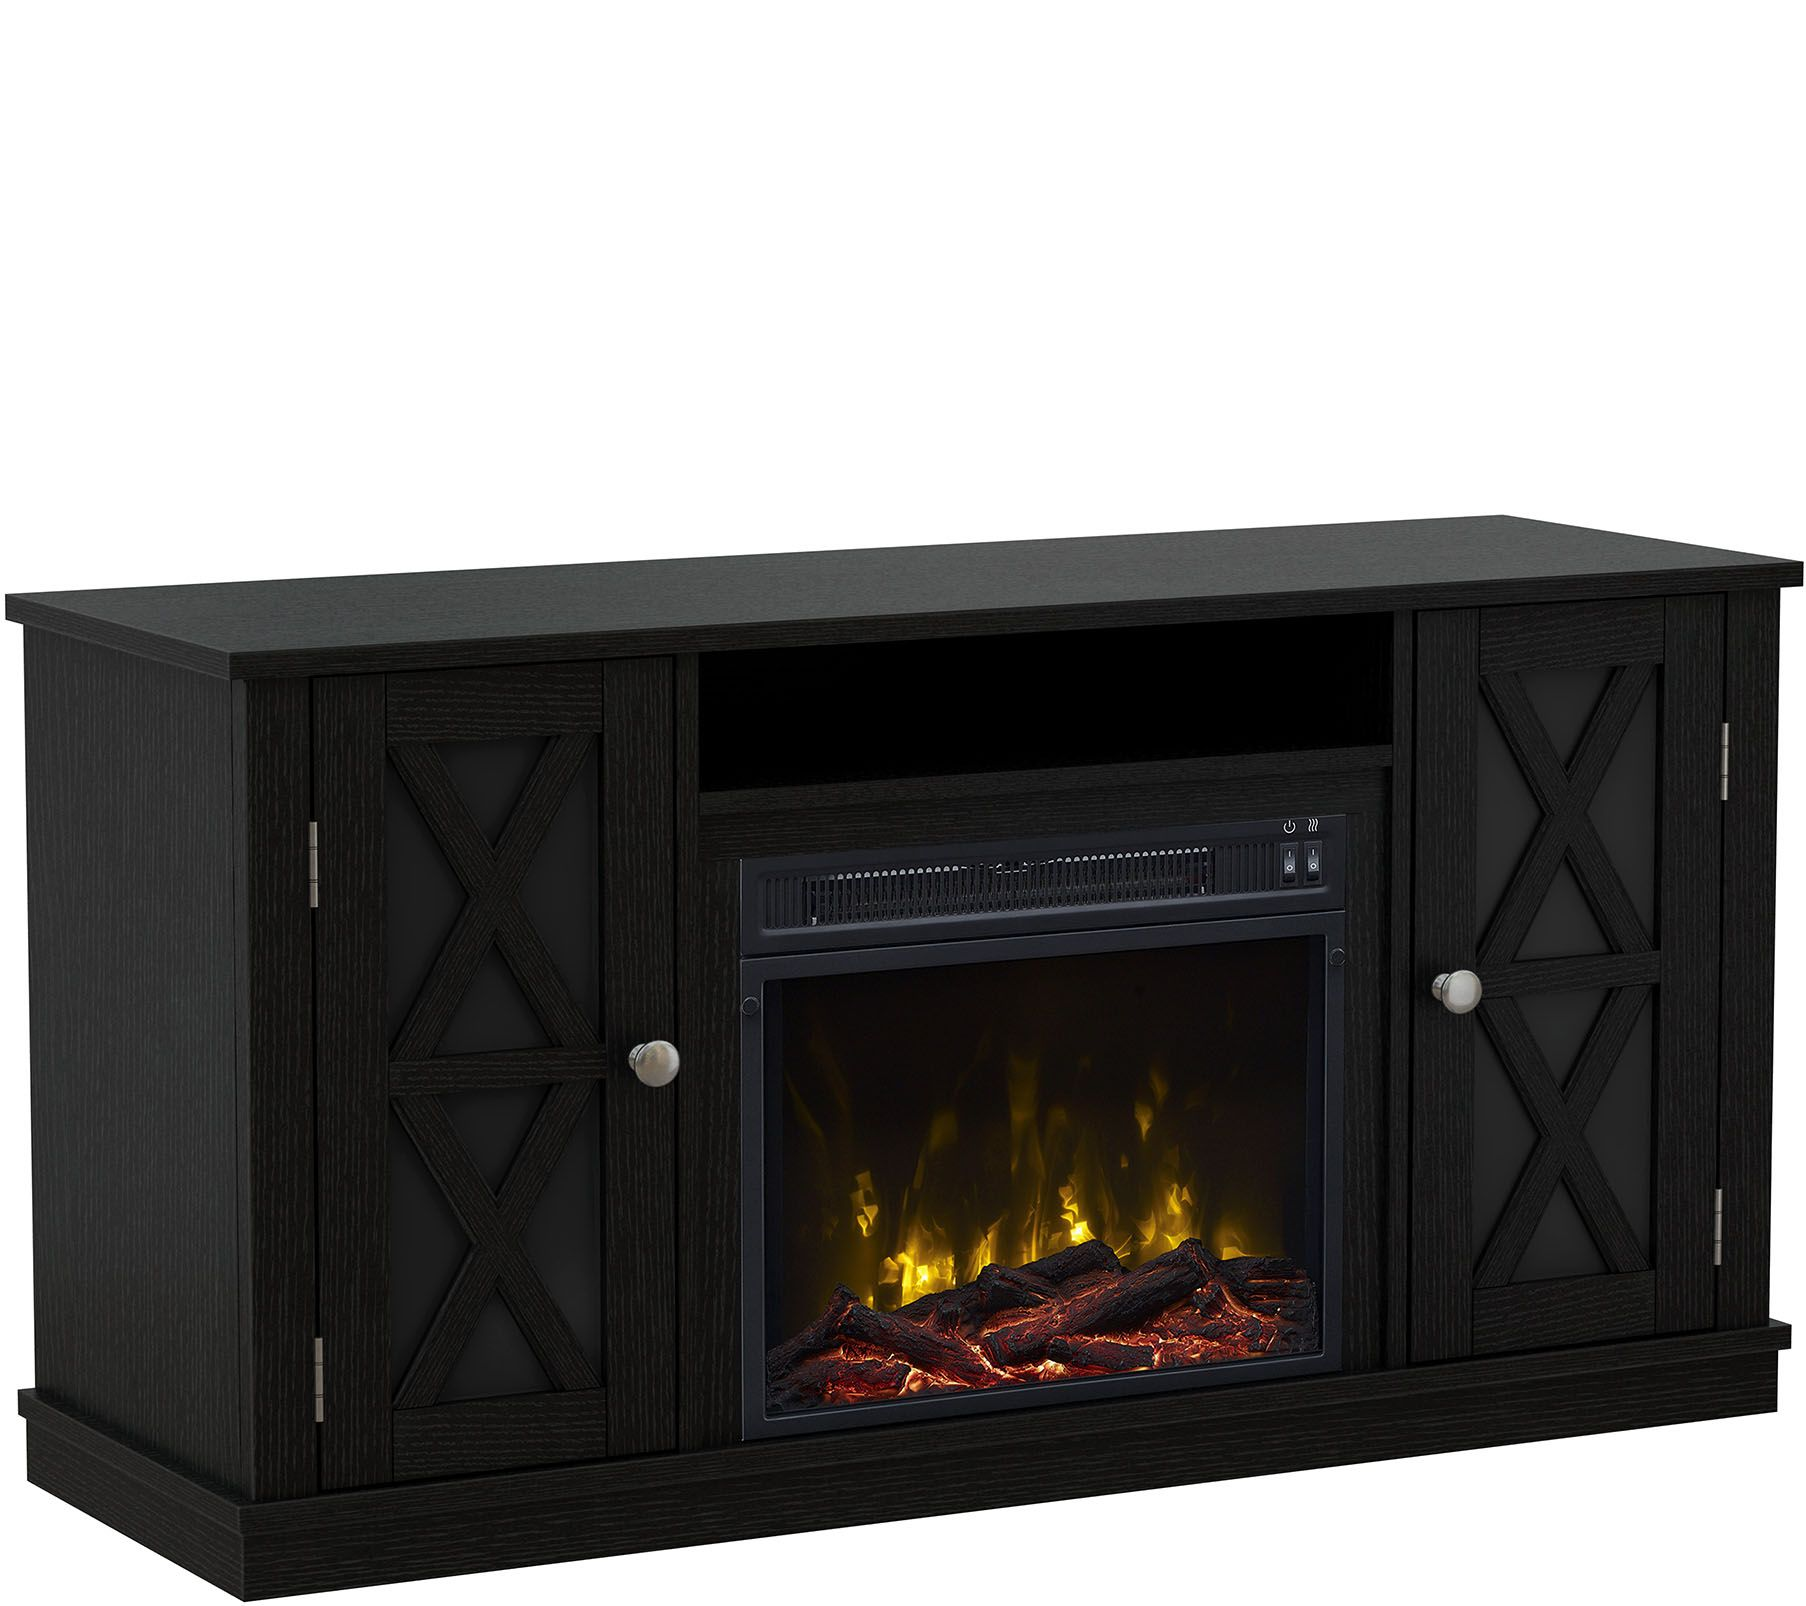 classicflame bayport fireplace tv stand for tvsup to 55. Black Bedroom Furniture Sets. Home Design Ideas